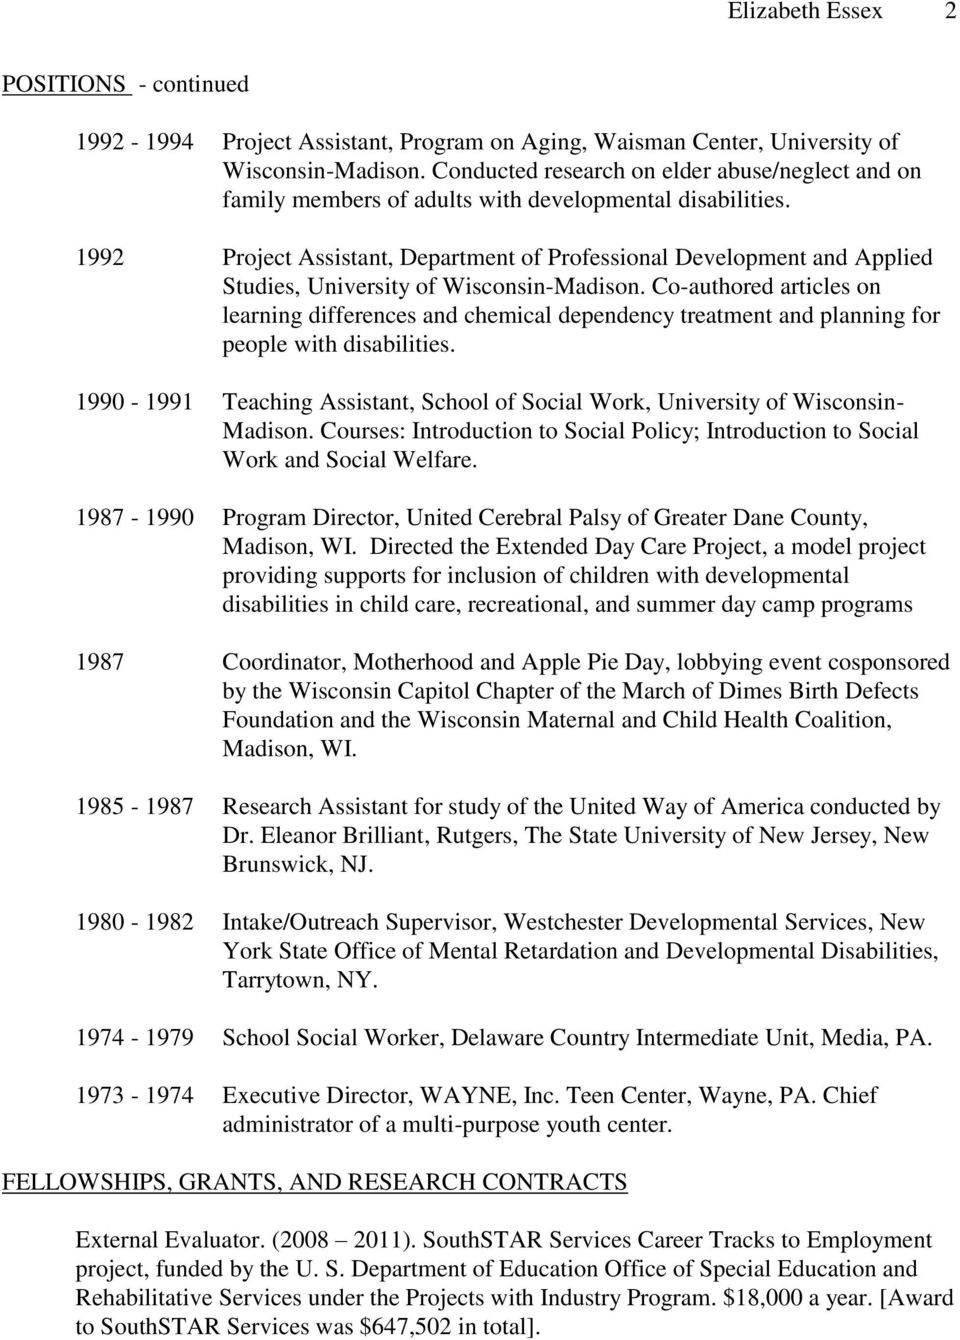 1992 Project Assistant, Department of Professional Development and Applied Studies, University of Wisconsin-Madison.